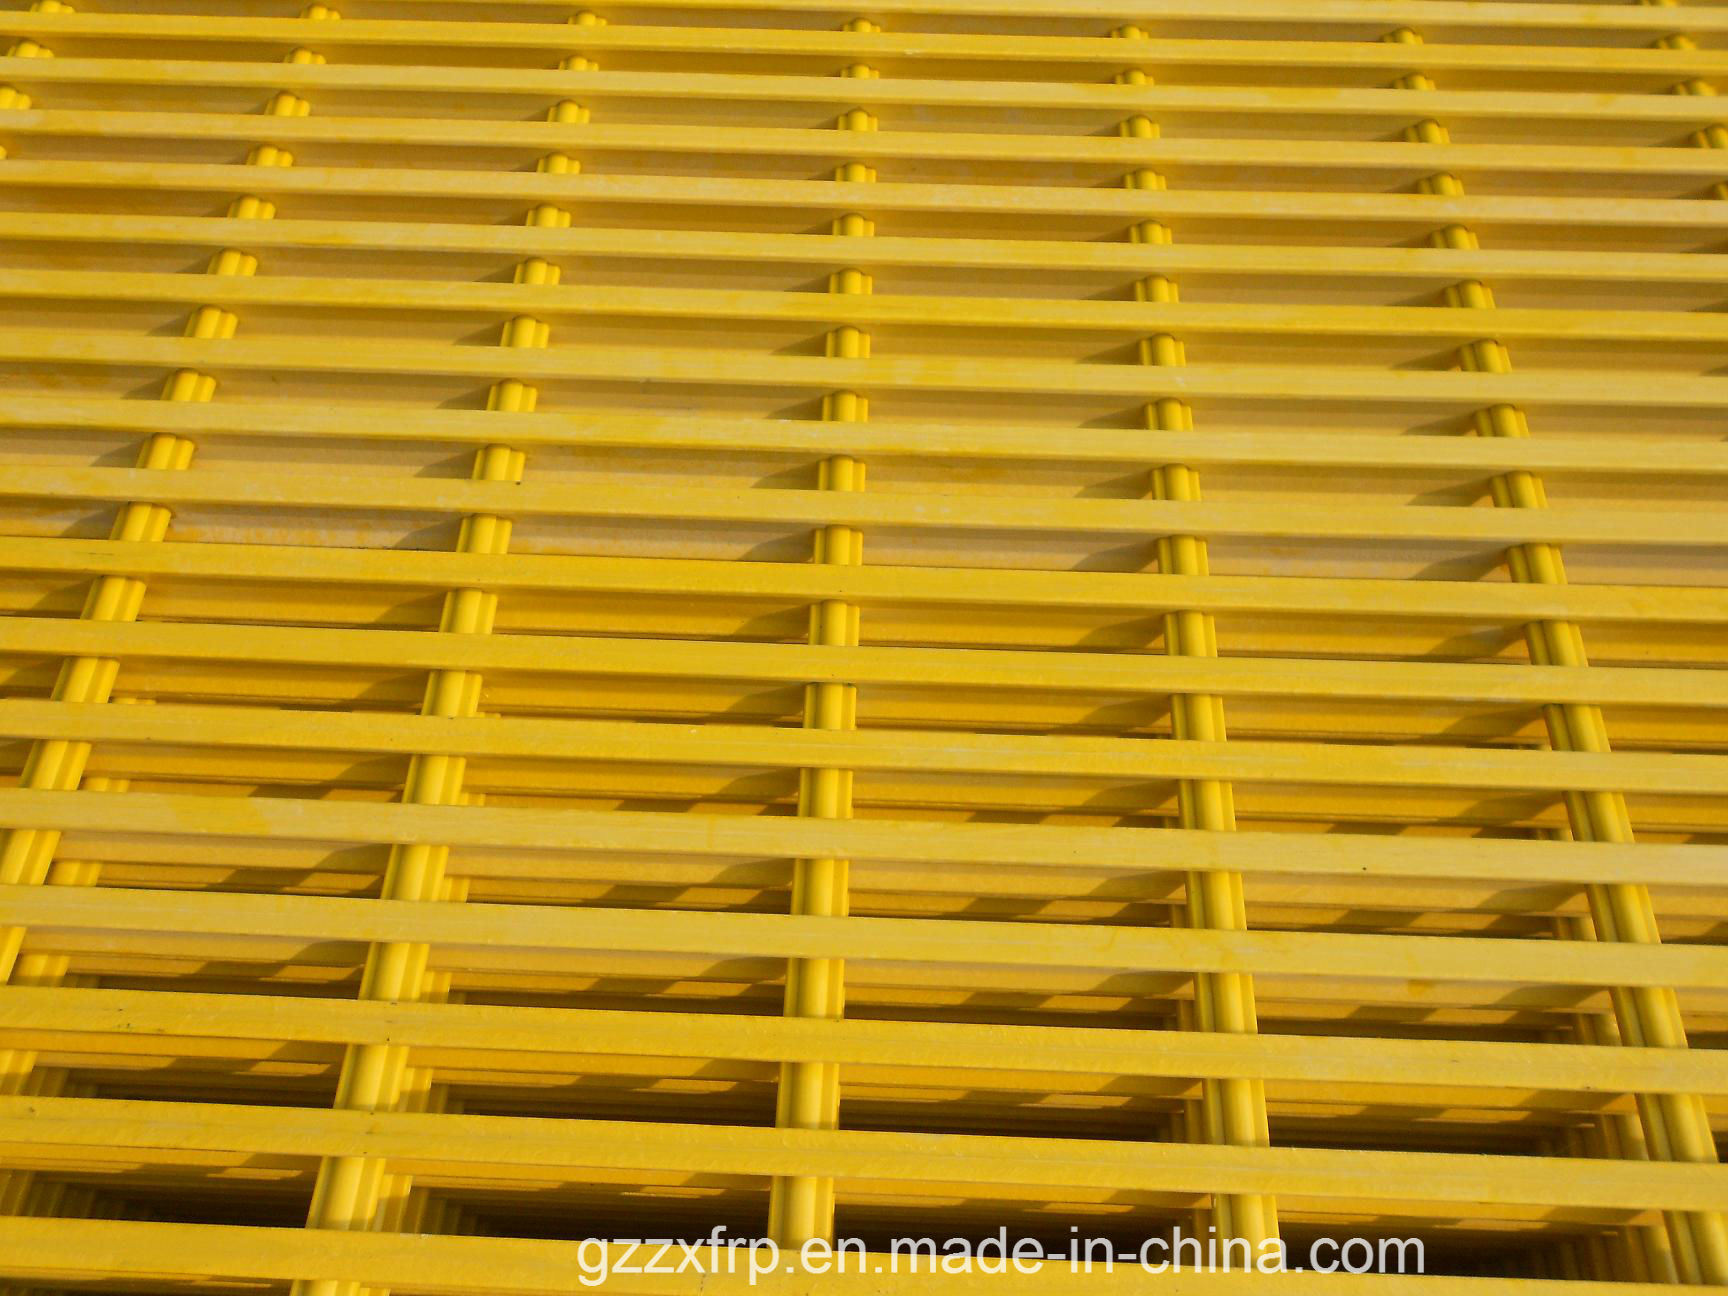 FRP/Fiberglass Pultruded Grating for Widely Use